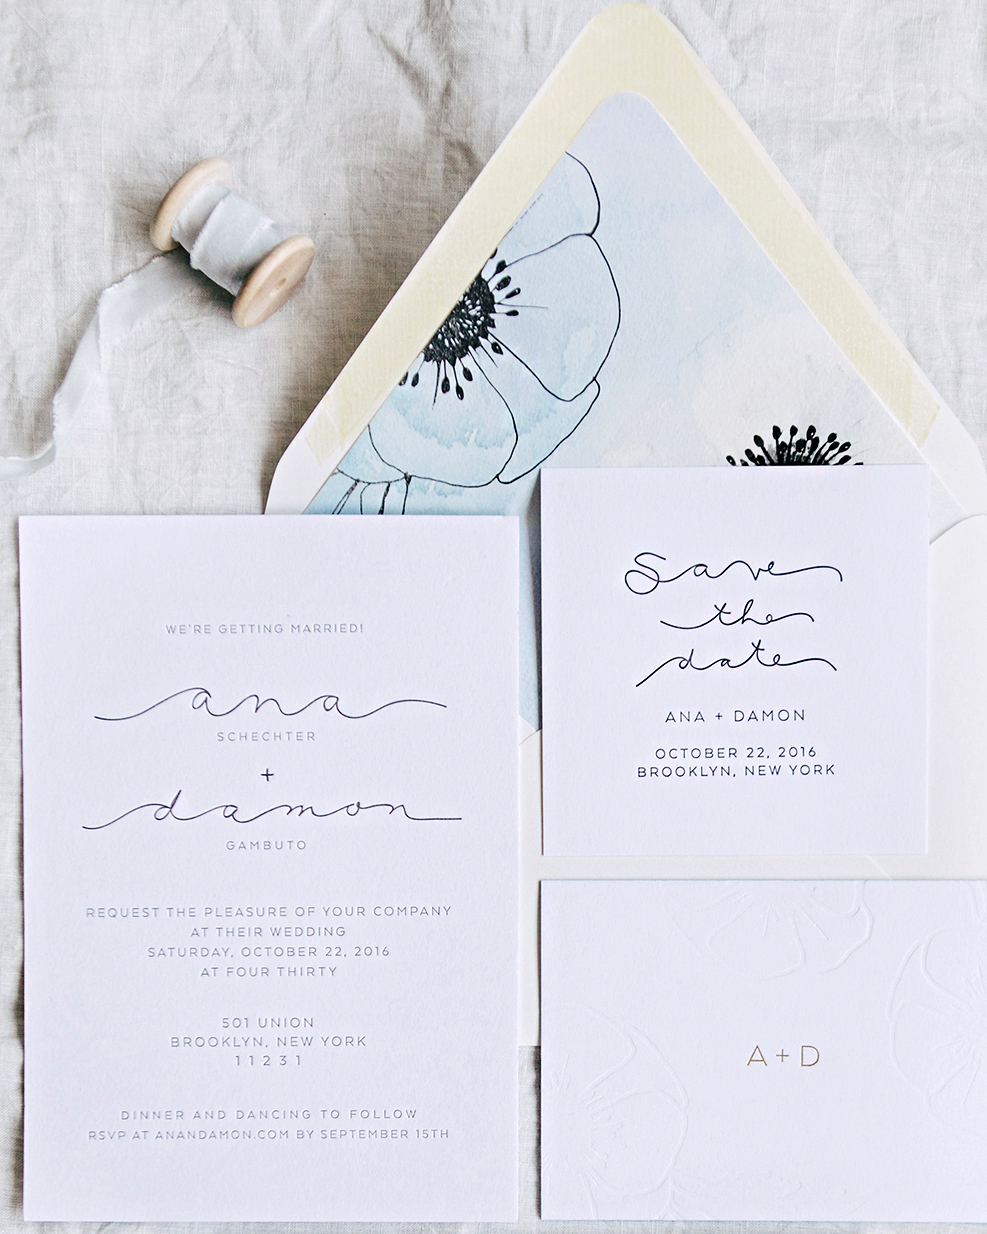 7 Major Wedding Invitation Trends, According to Stationers